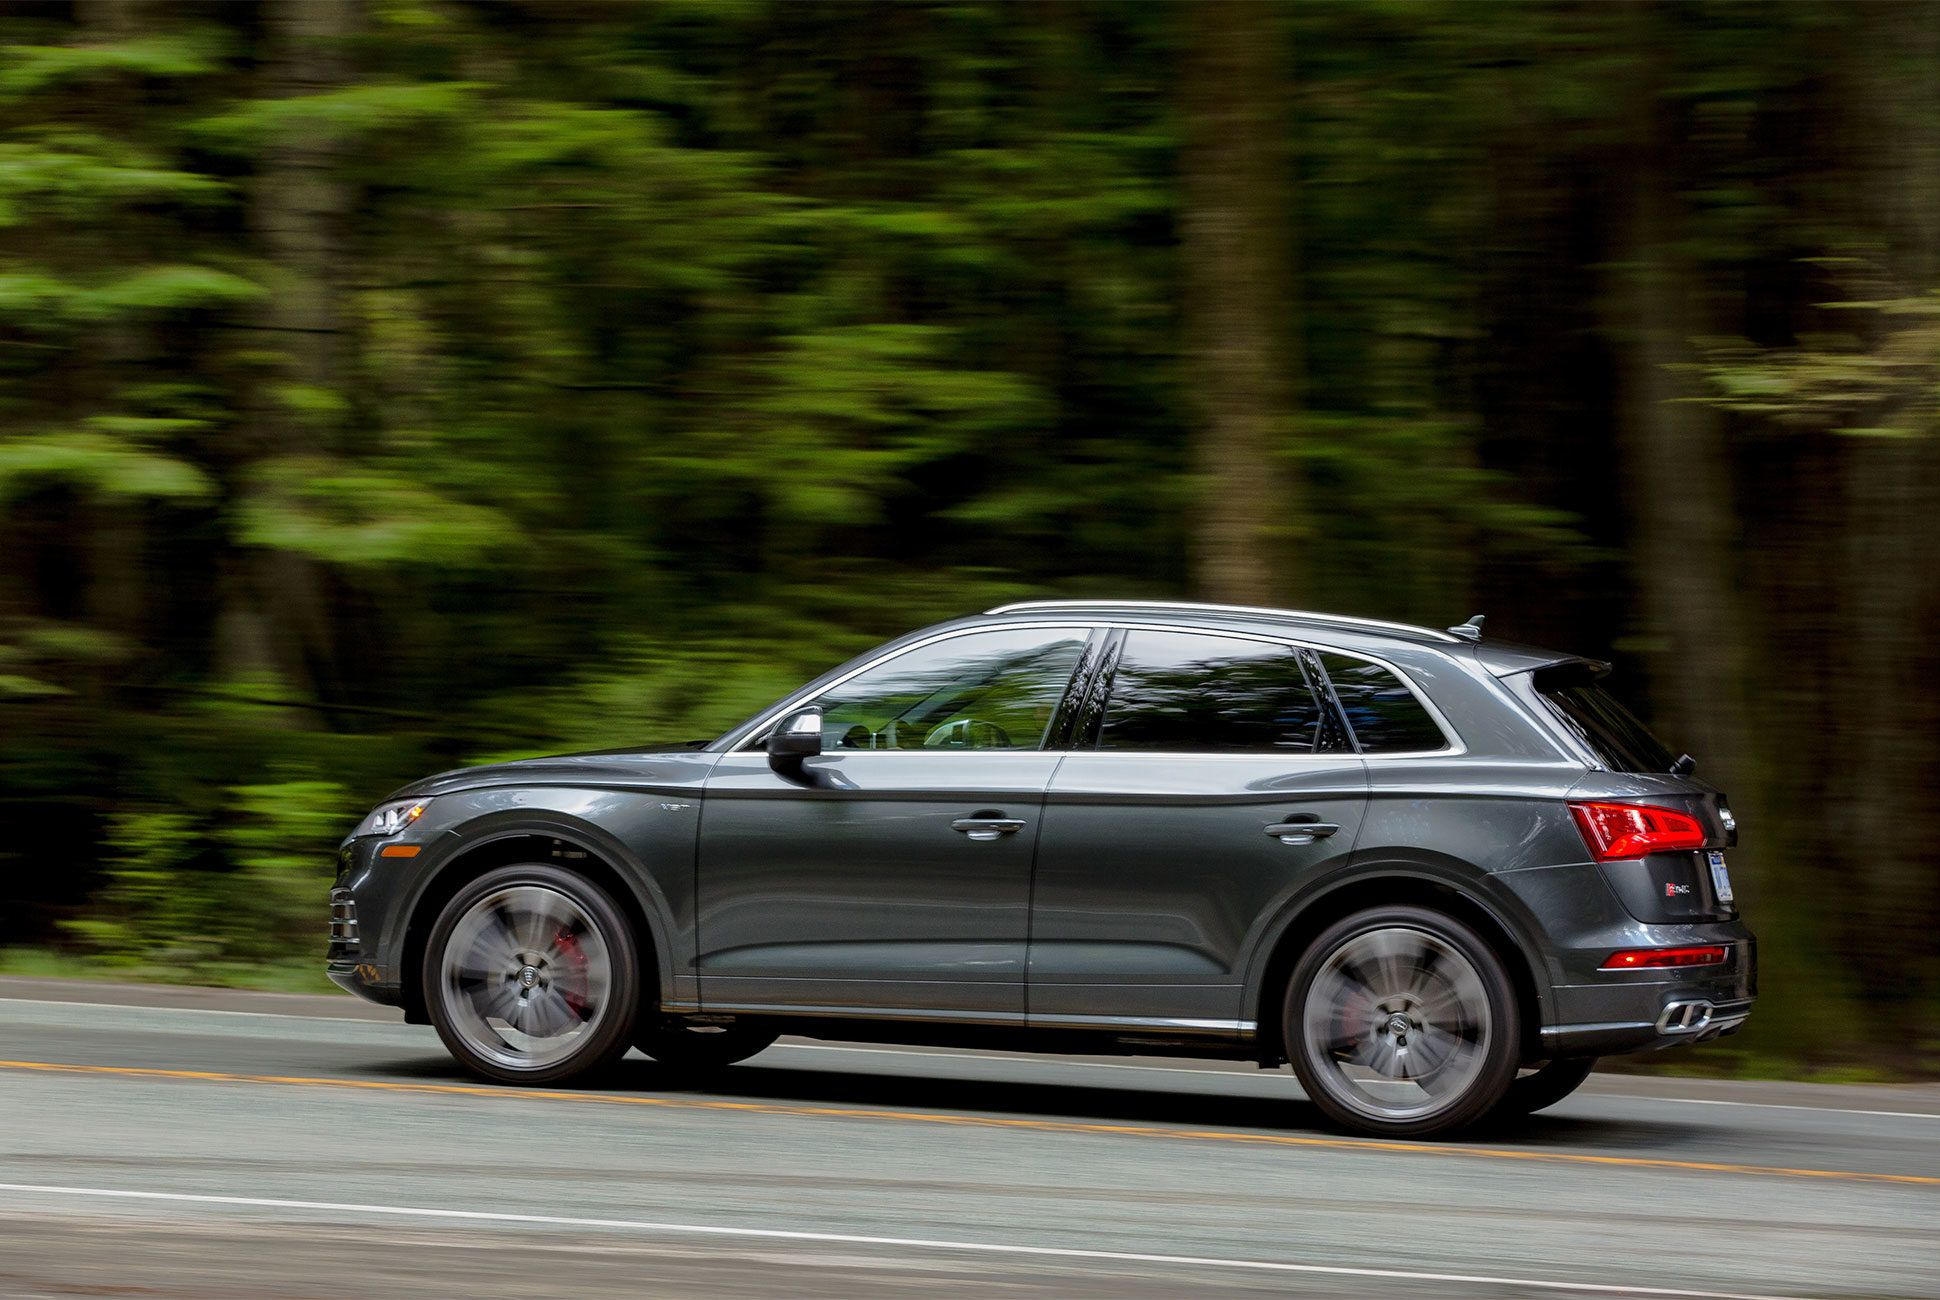 AUDI-SQ5-gear-patrol-slide-3